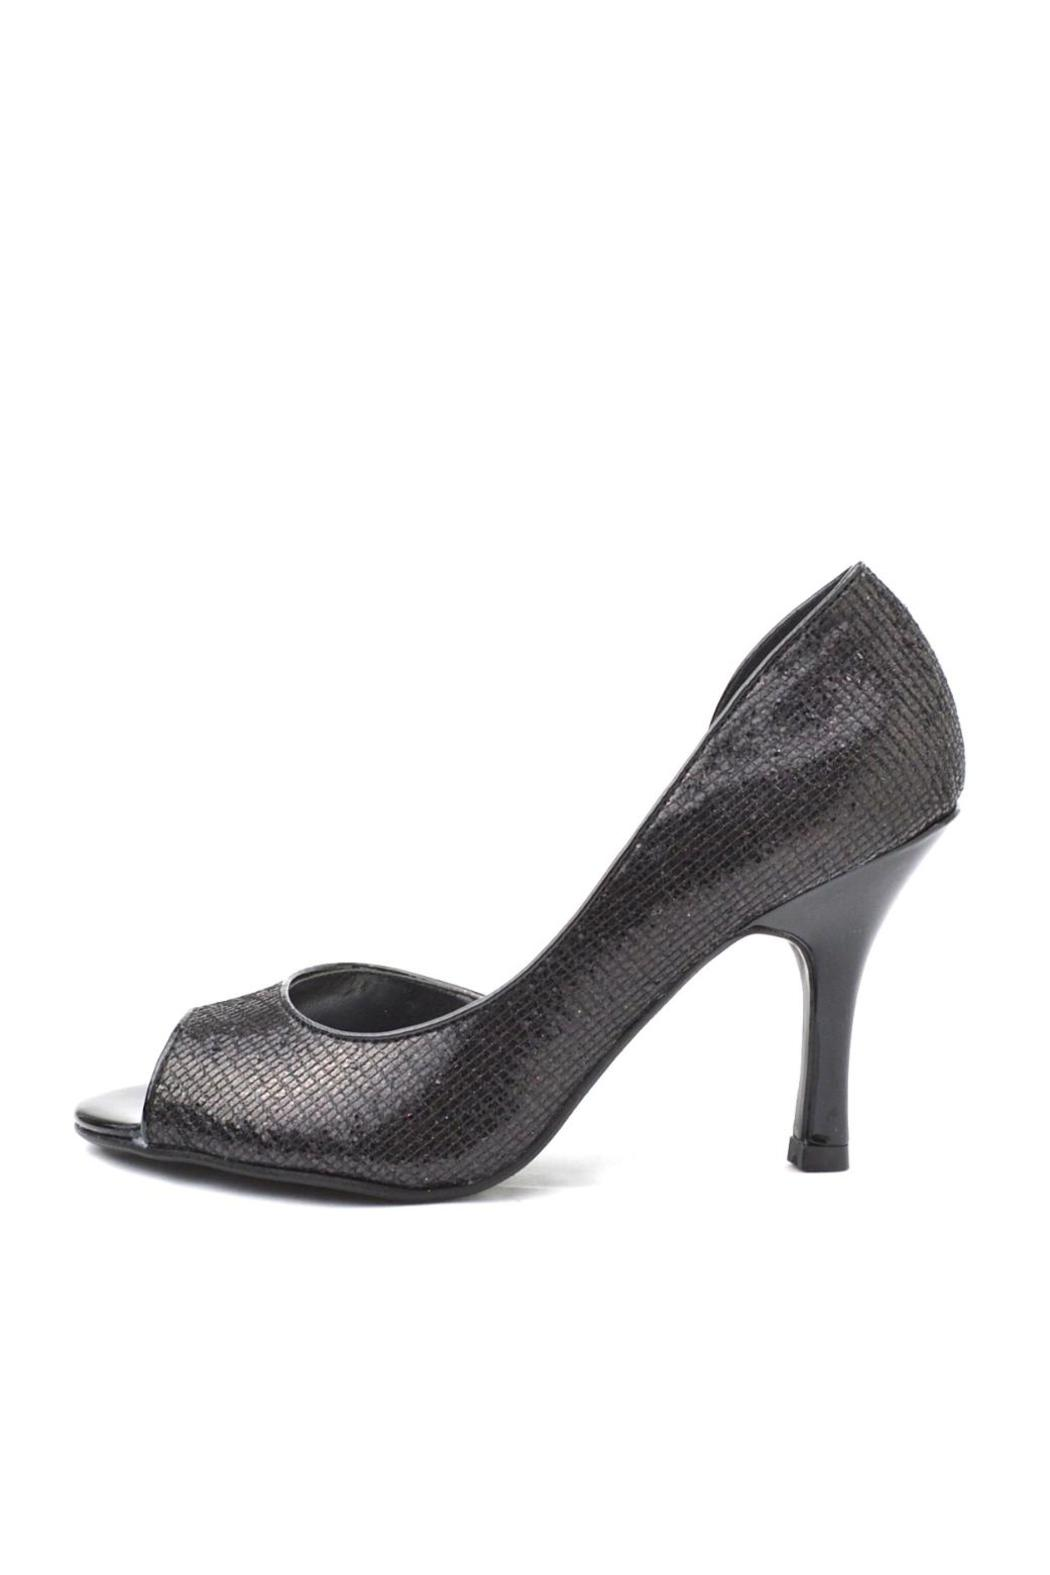 City Classified Sparkly Black Glitter Heel - Main Image